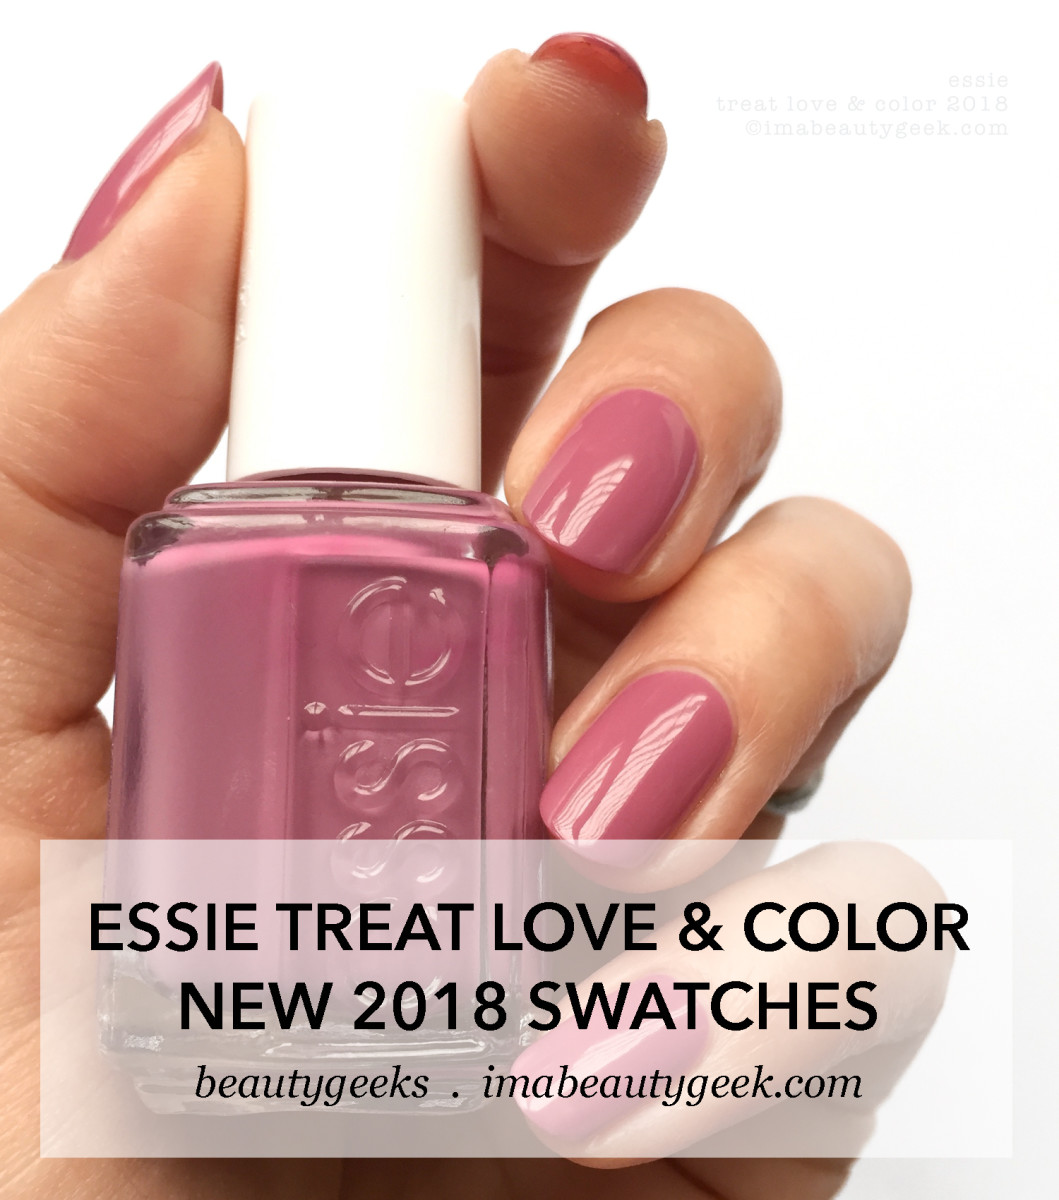 ESSIE TREAT LOVE & COLOR SWATCHES REVIEW 2018 - Beautygeeks